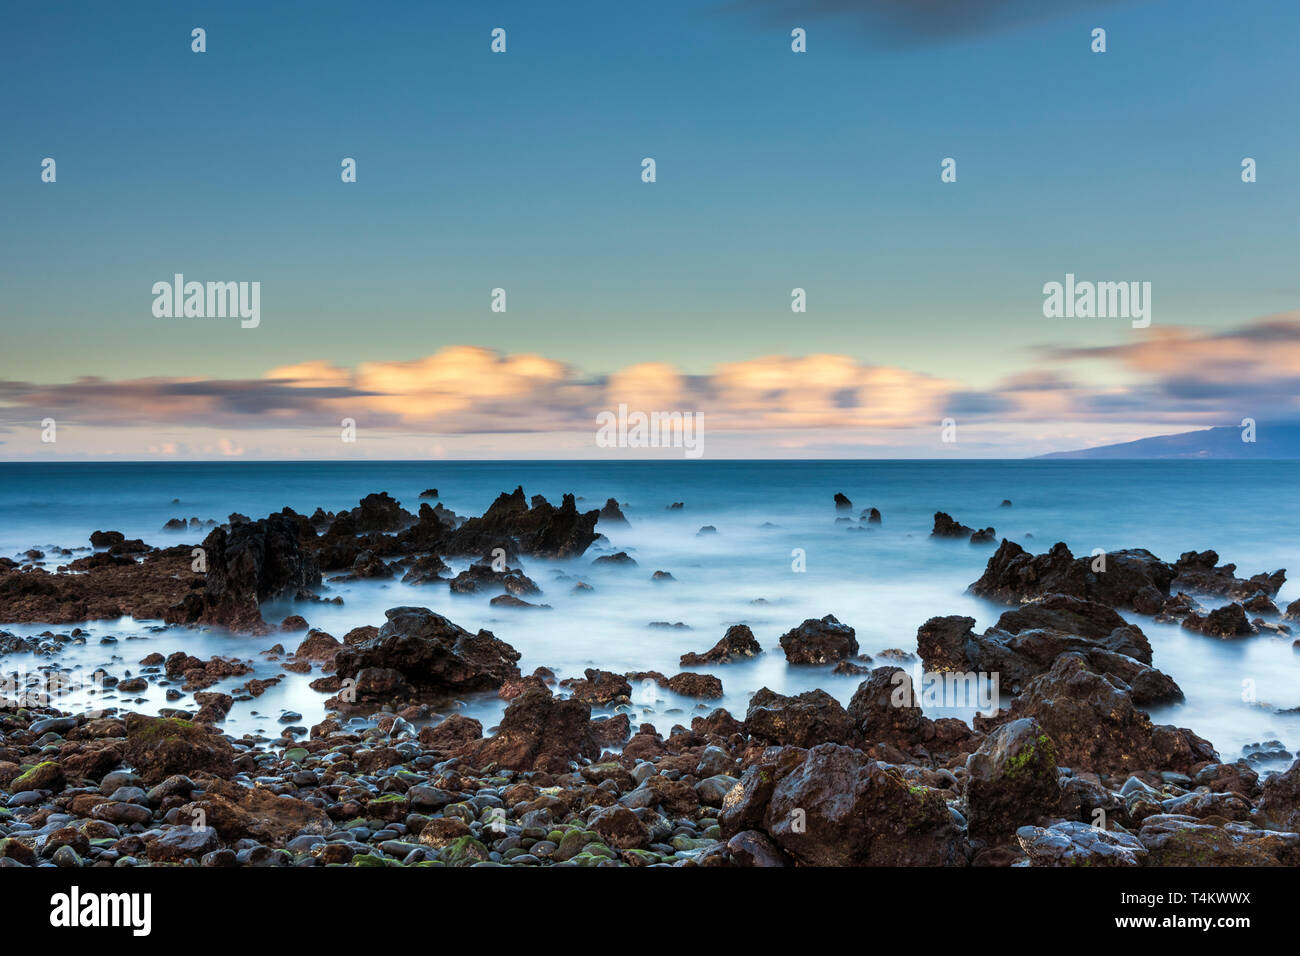 Seascape coastline of west Tenerife at dawn made using long exposure photography with nuetral density filters to create silky water and movement in th Stock Photo